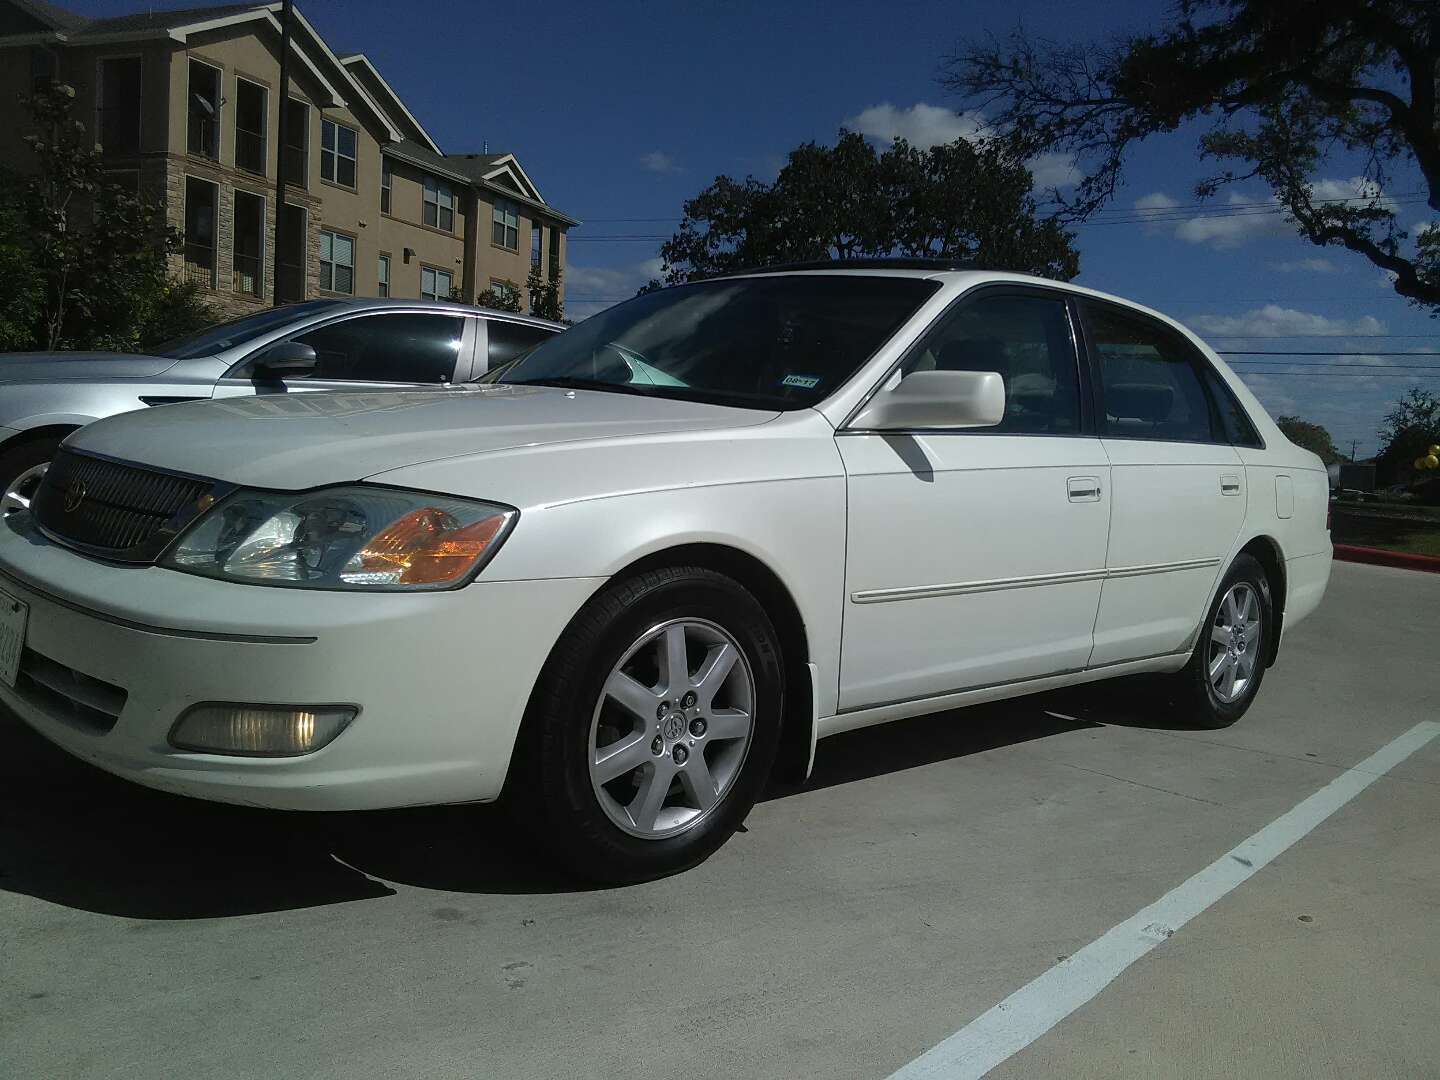 2001 toyota avalon xls for sale in pflugerville tx 5miles buy and sell. Black Bedroom Furniture Sets. Home Design Ideas